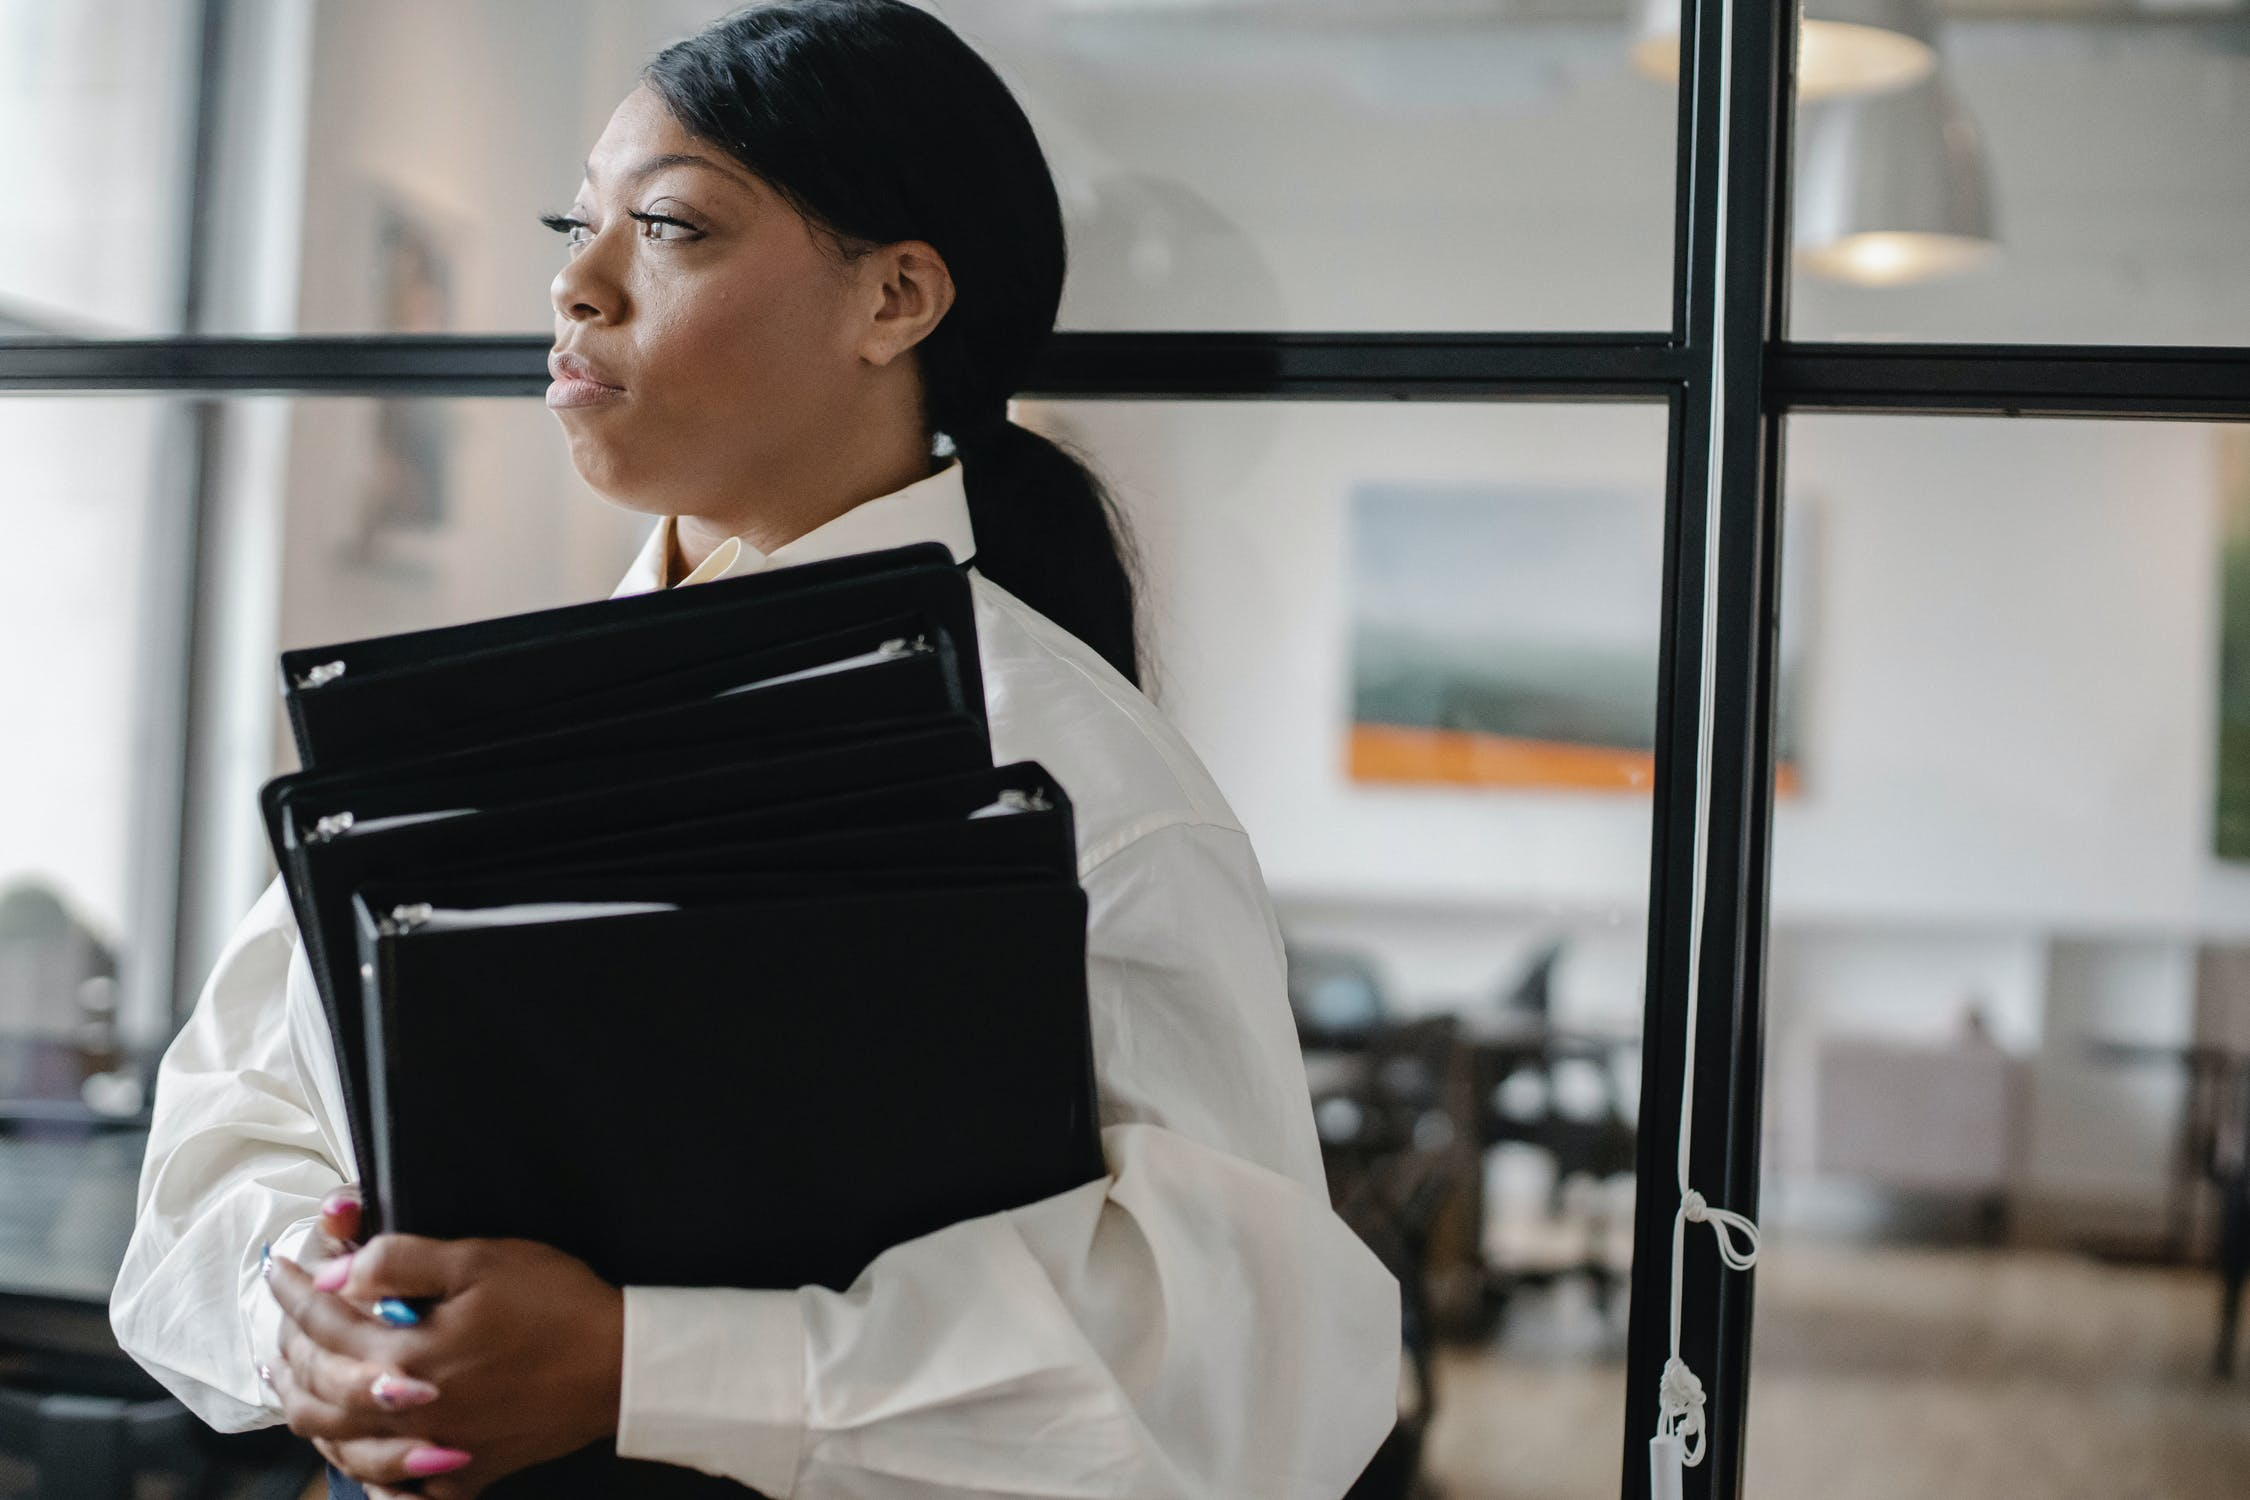 Black woman standing with files in hand